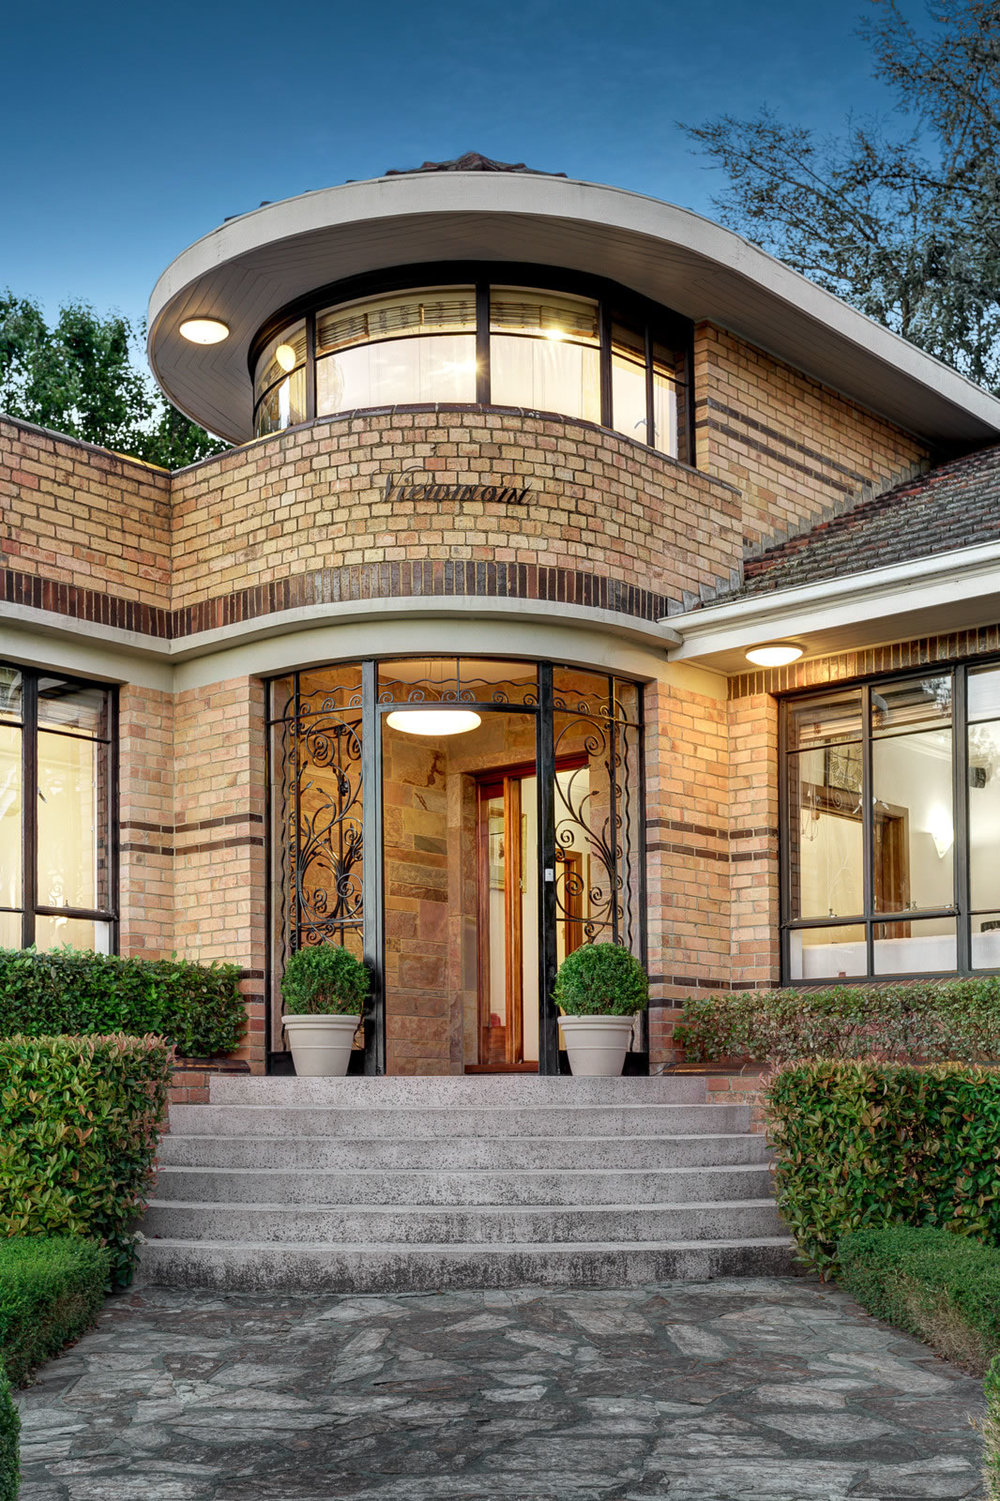 Historical architectural style the art deco waterfall for Amazing house design architecture